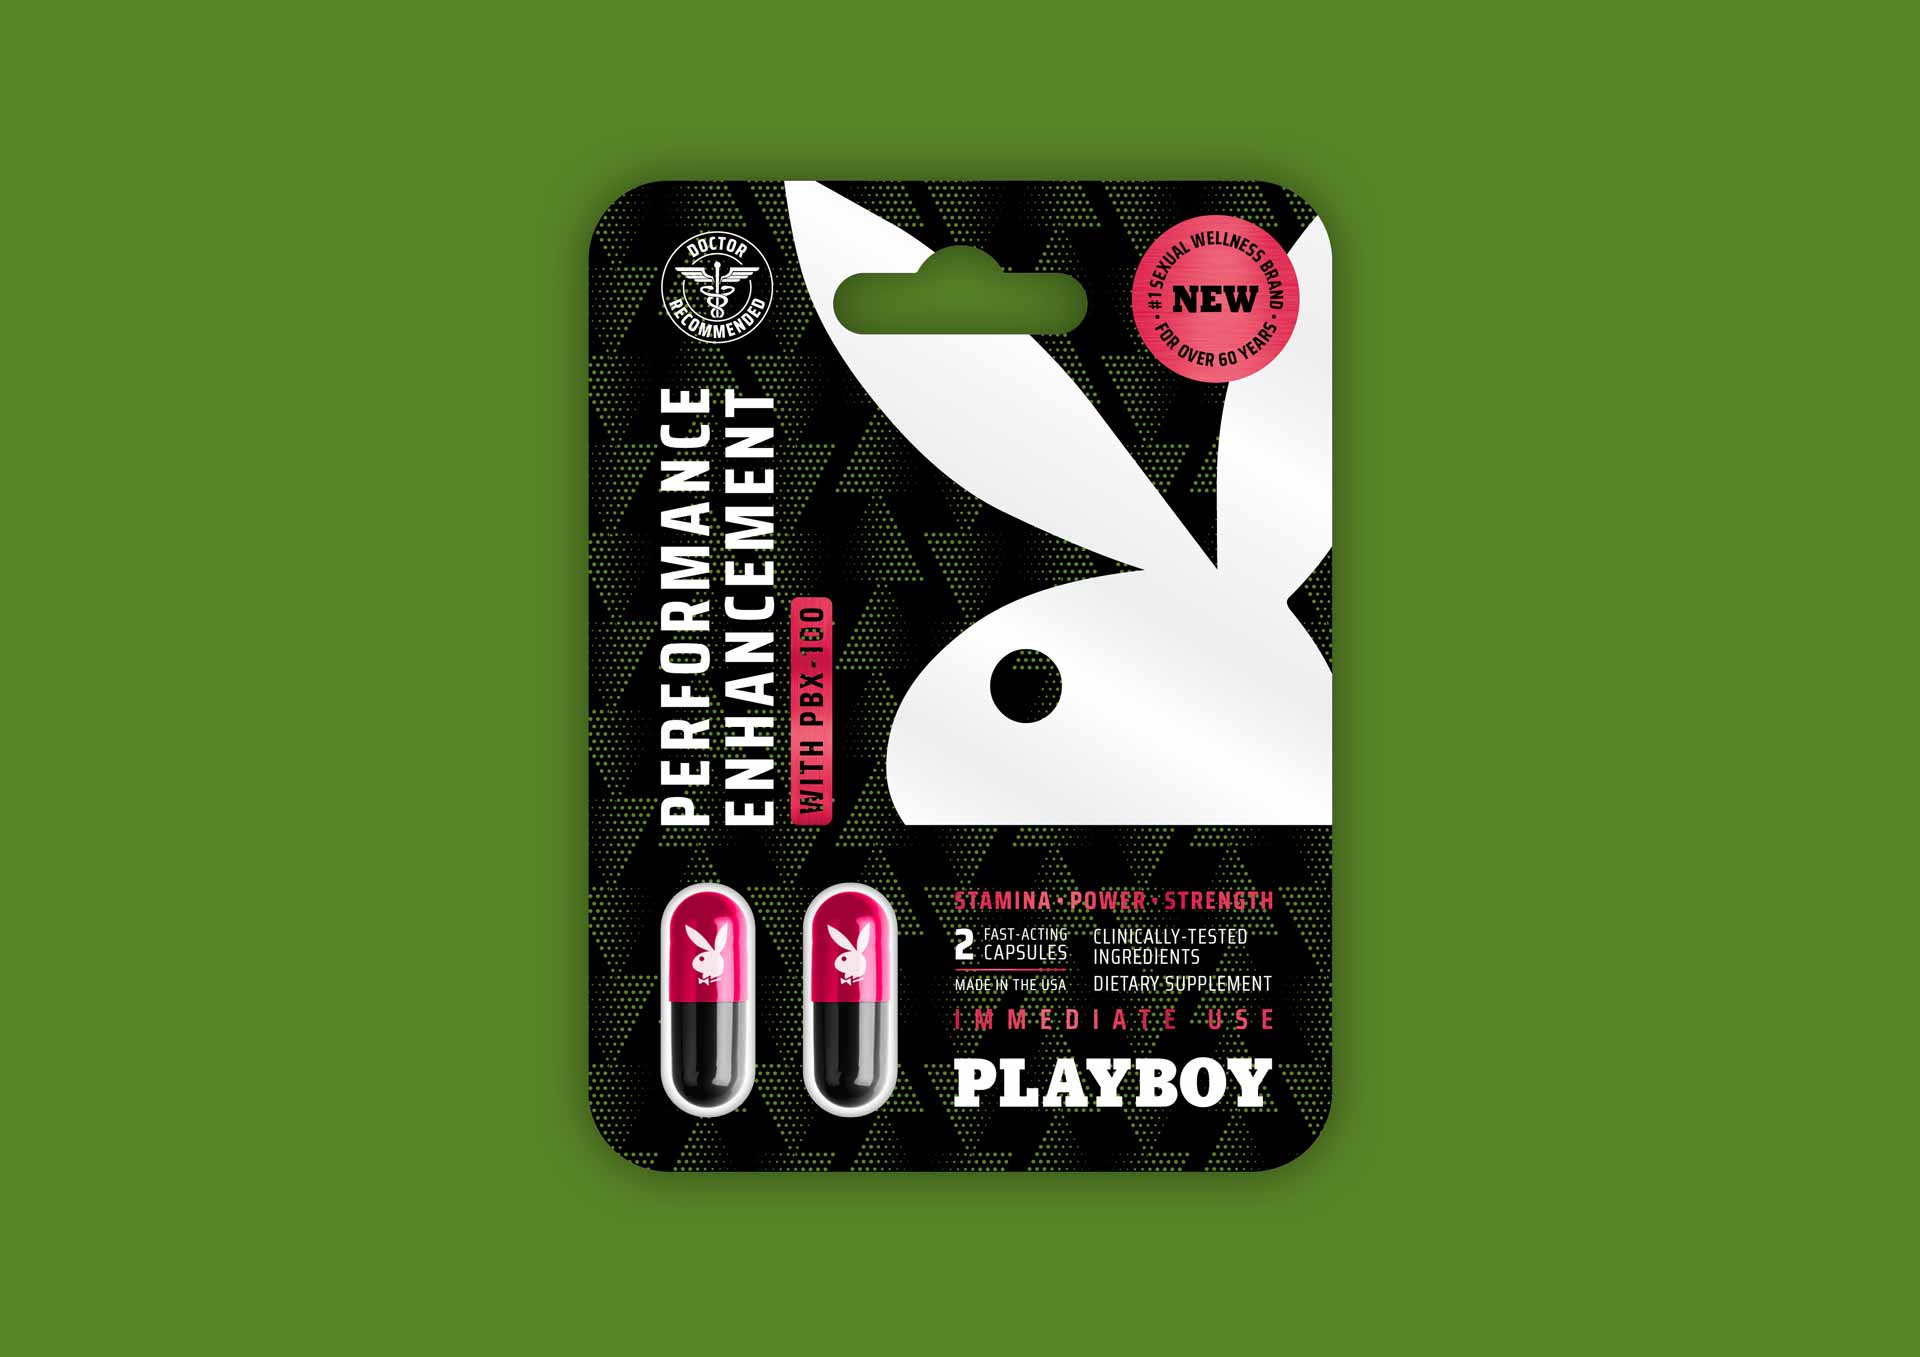 playboy-packaging-7